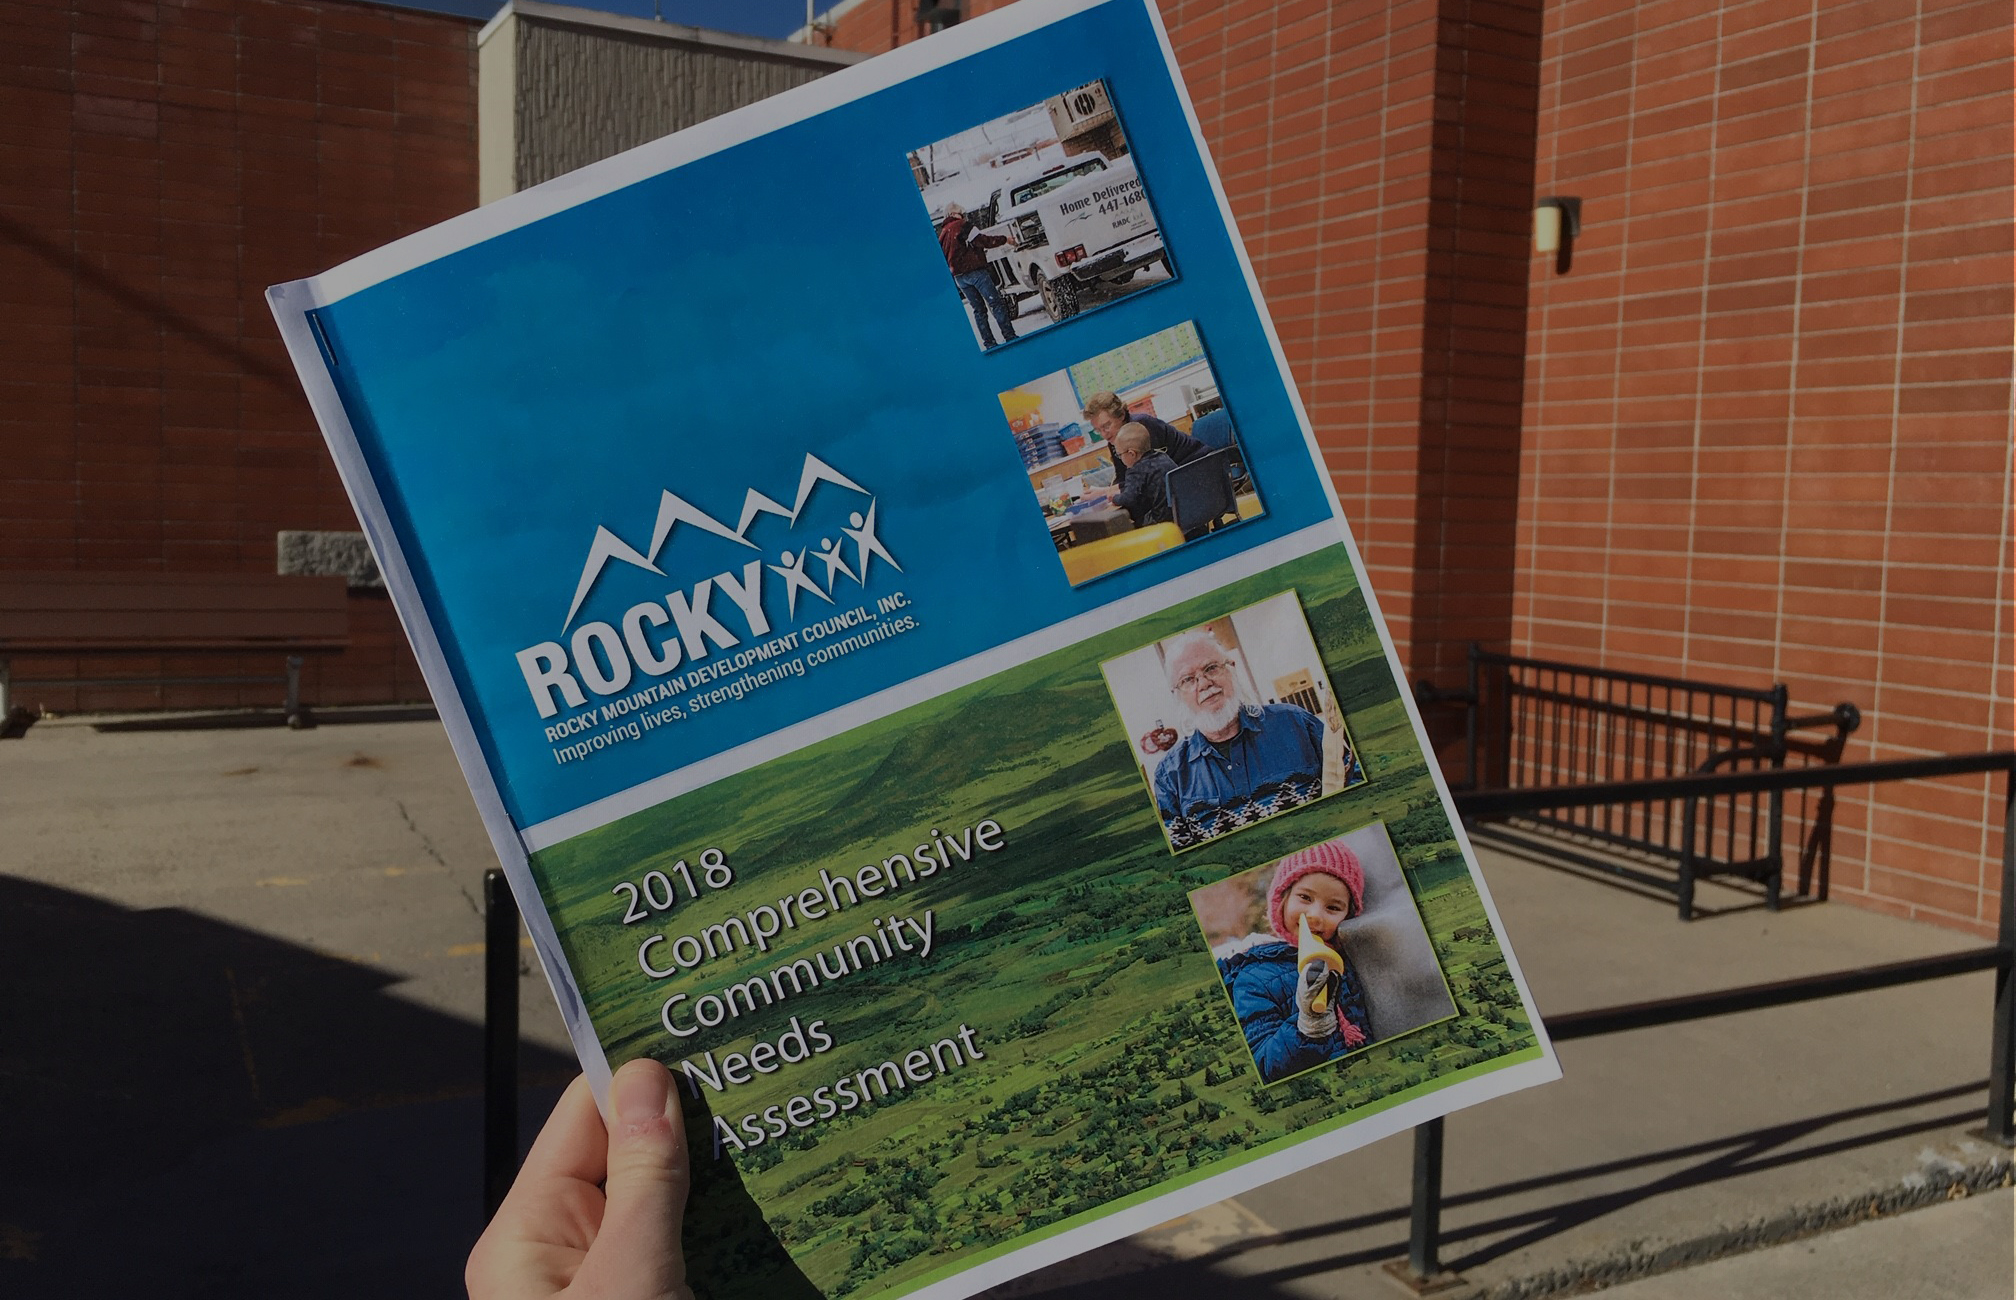 Rocky's Comprehensive Community Needs Assessment has been Completed!